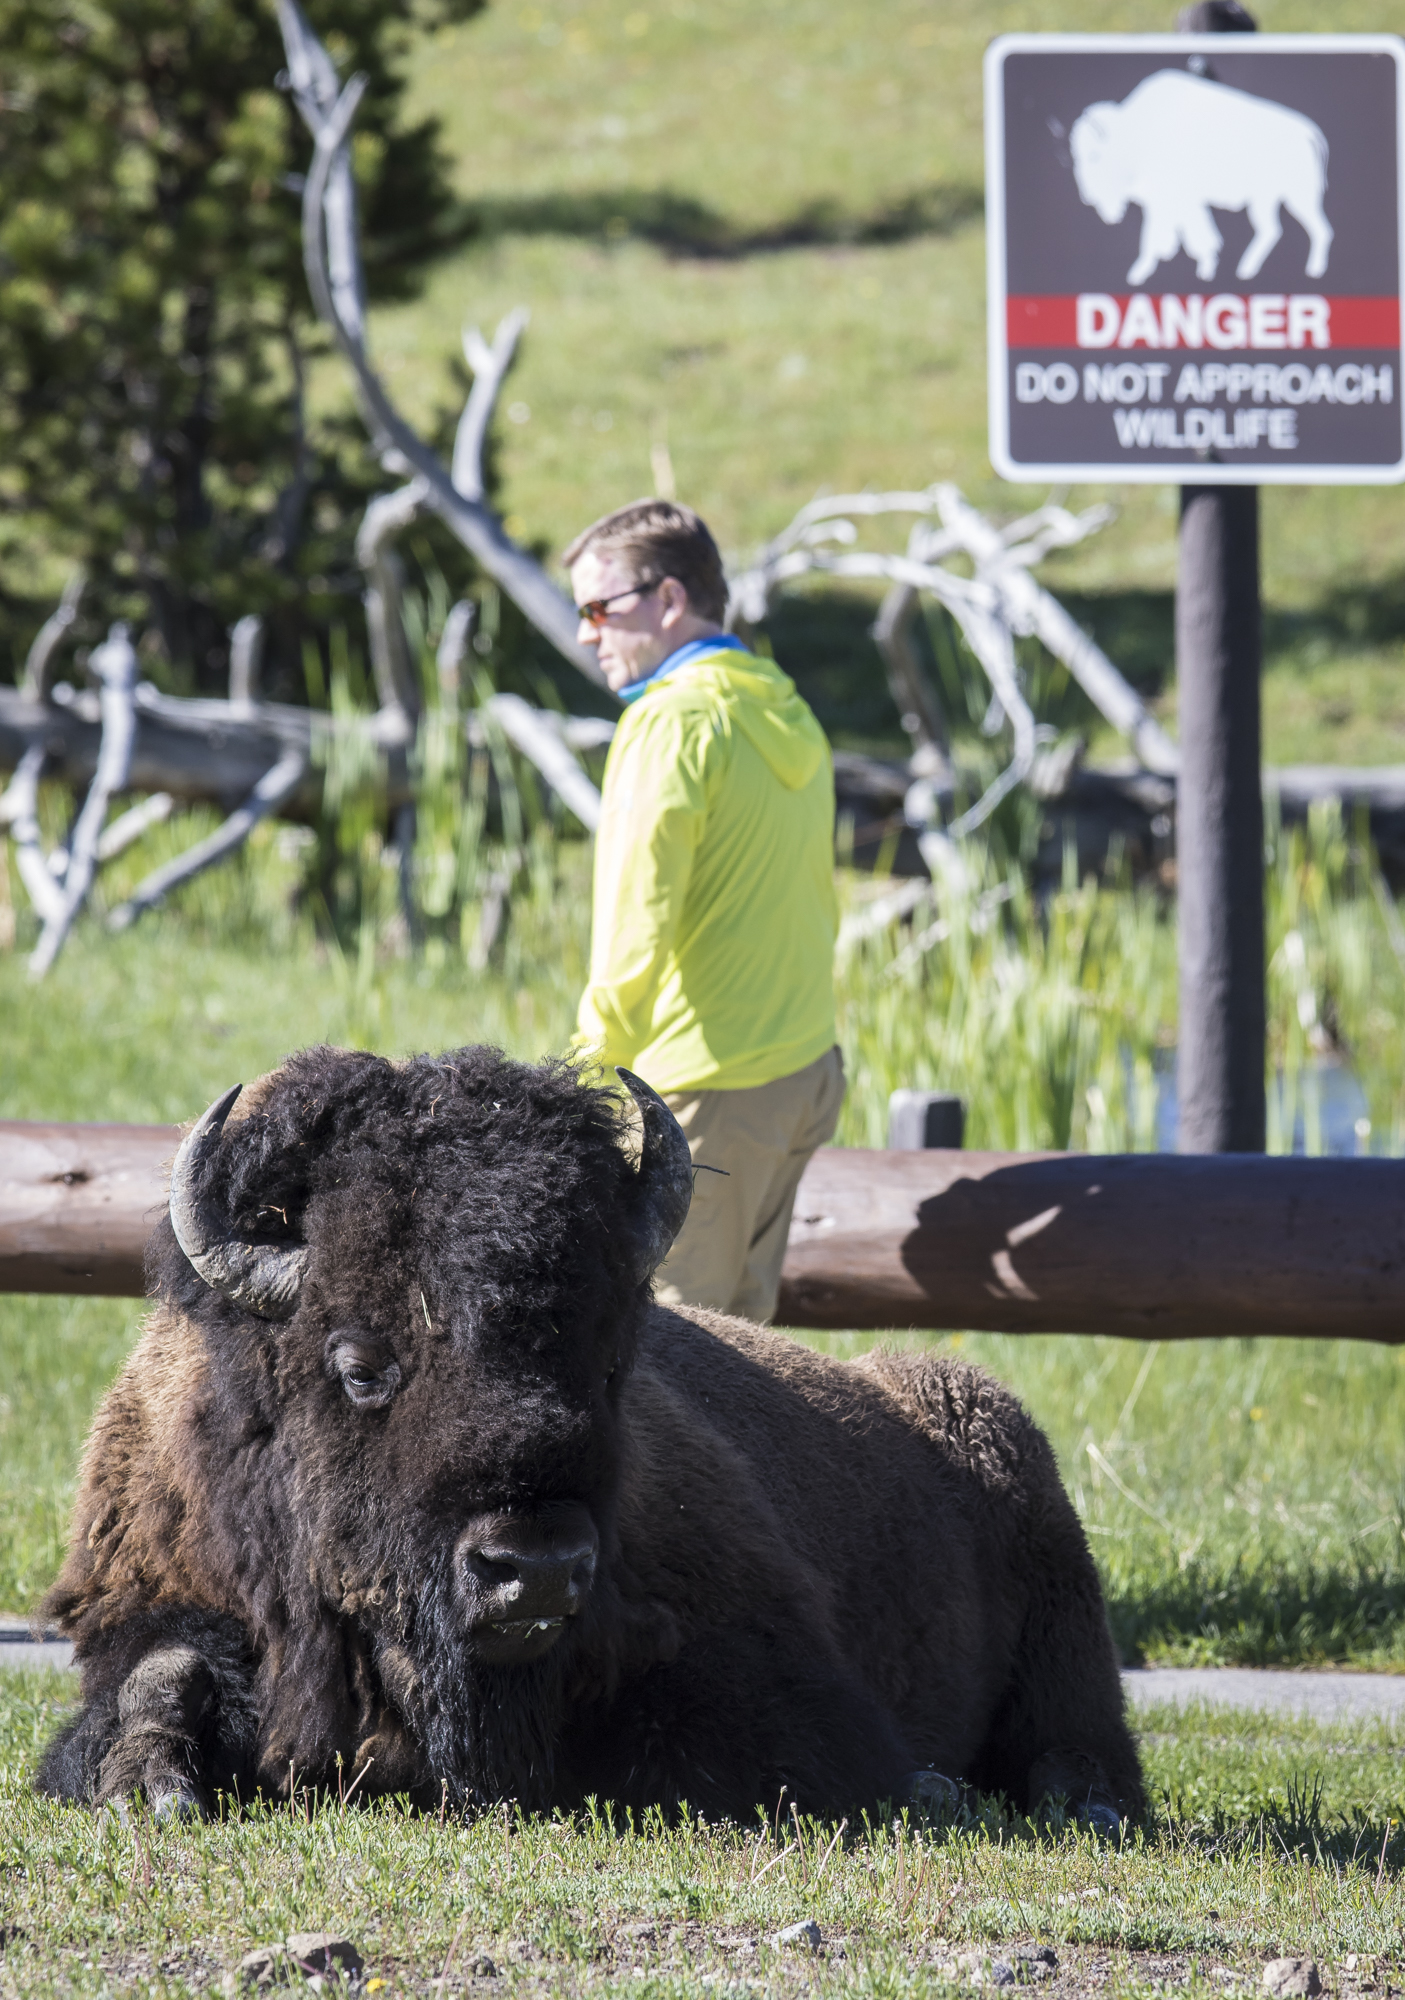 bison and person